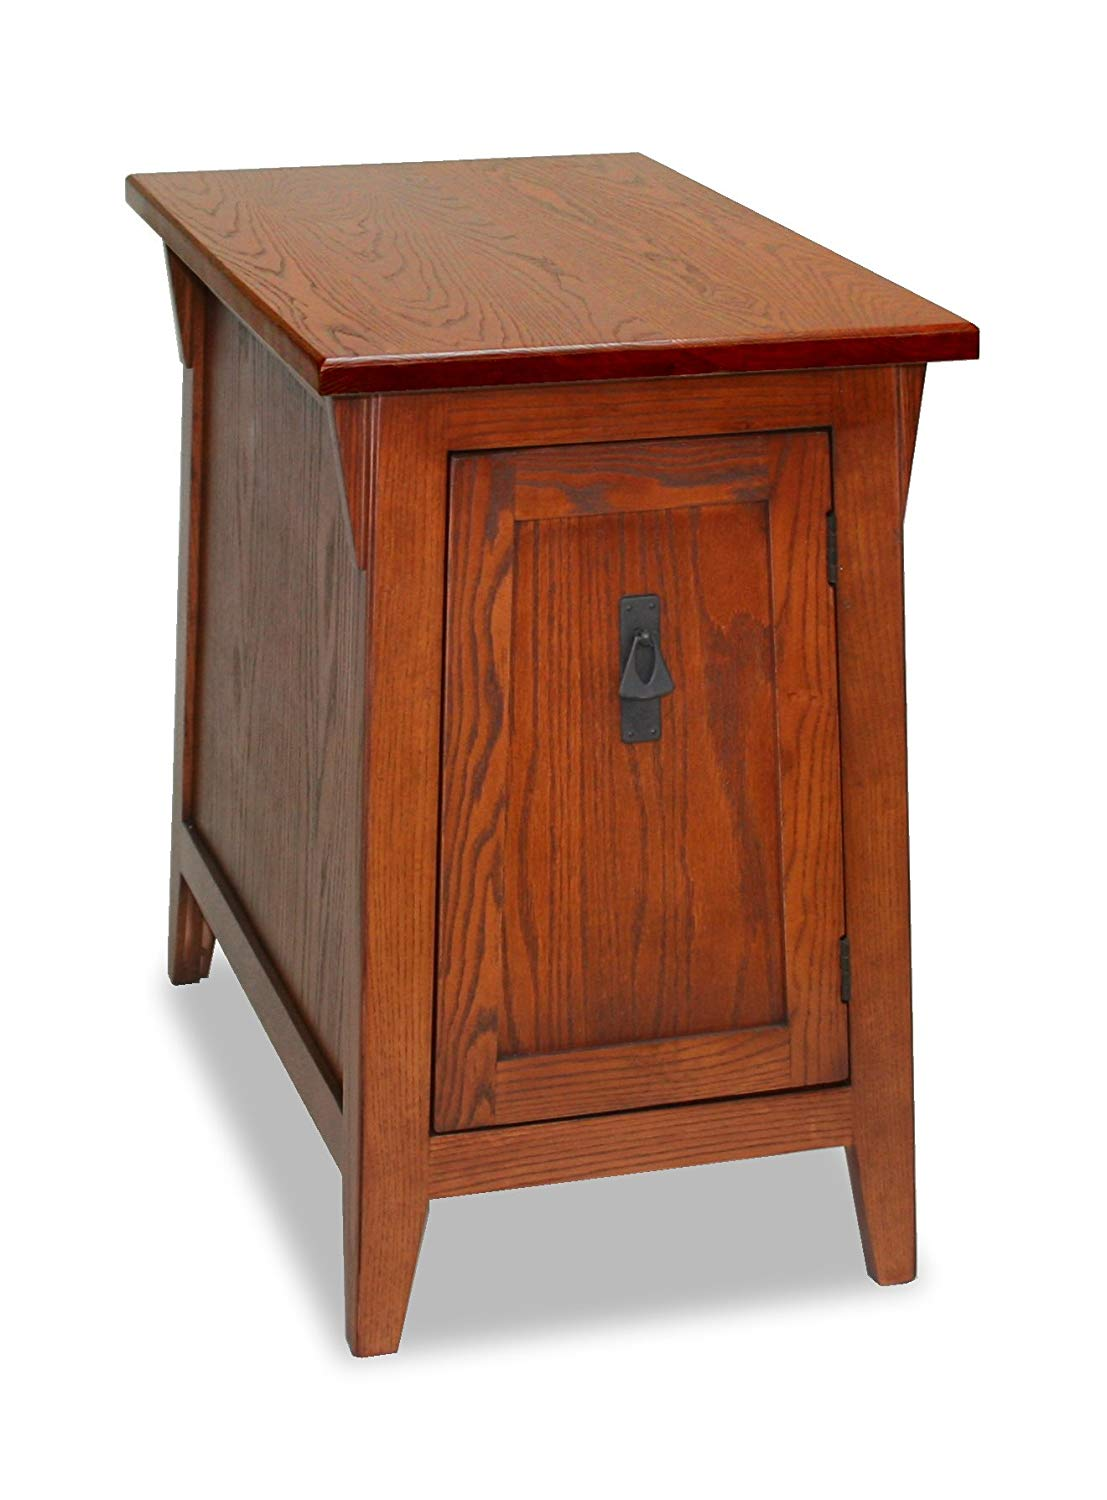 leick favorite finds mission cabinet end table russet better homes and gardens accent rustic gray kitchen dining garden furniture clearance coffee decor ideas pedestal bedside